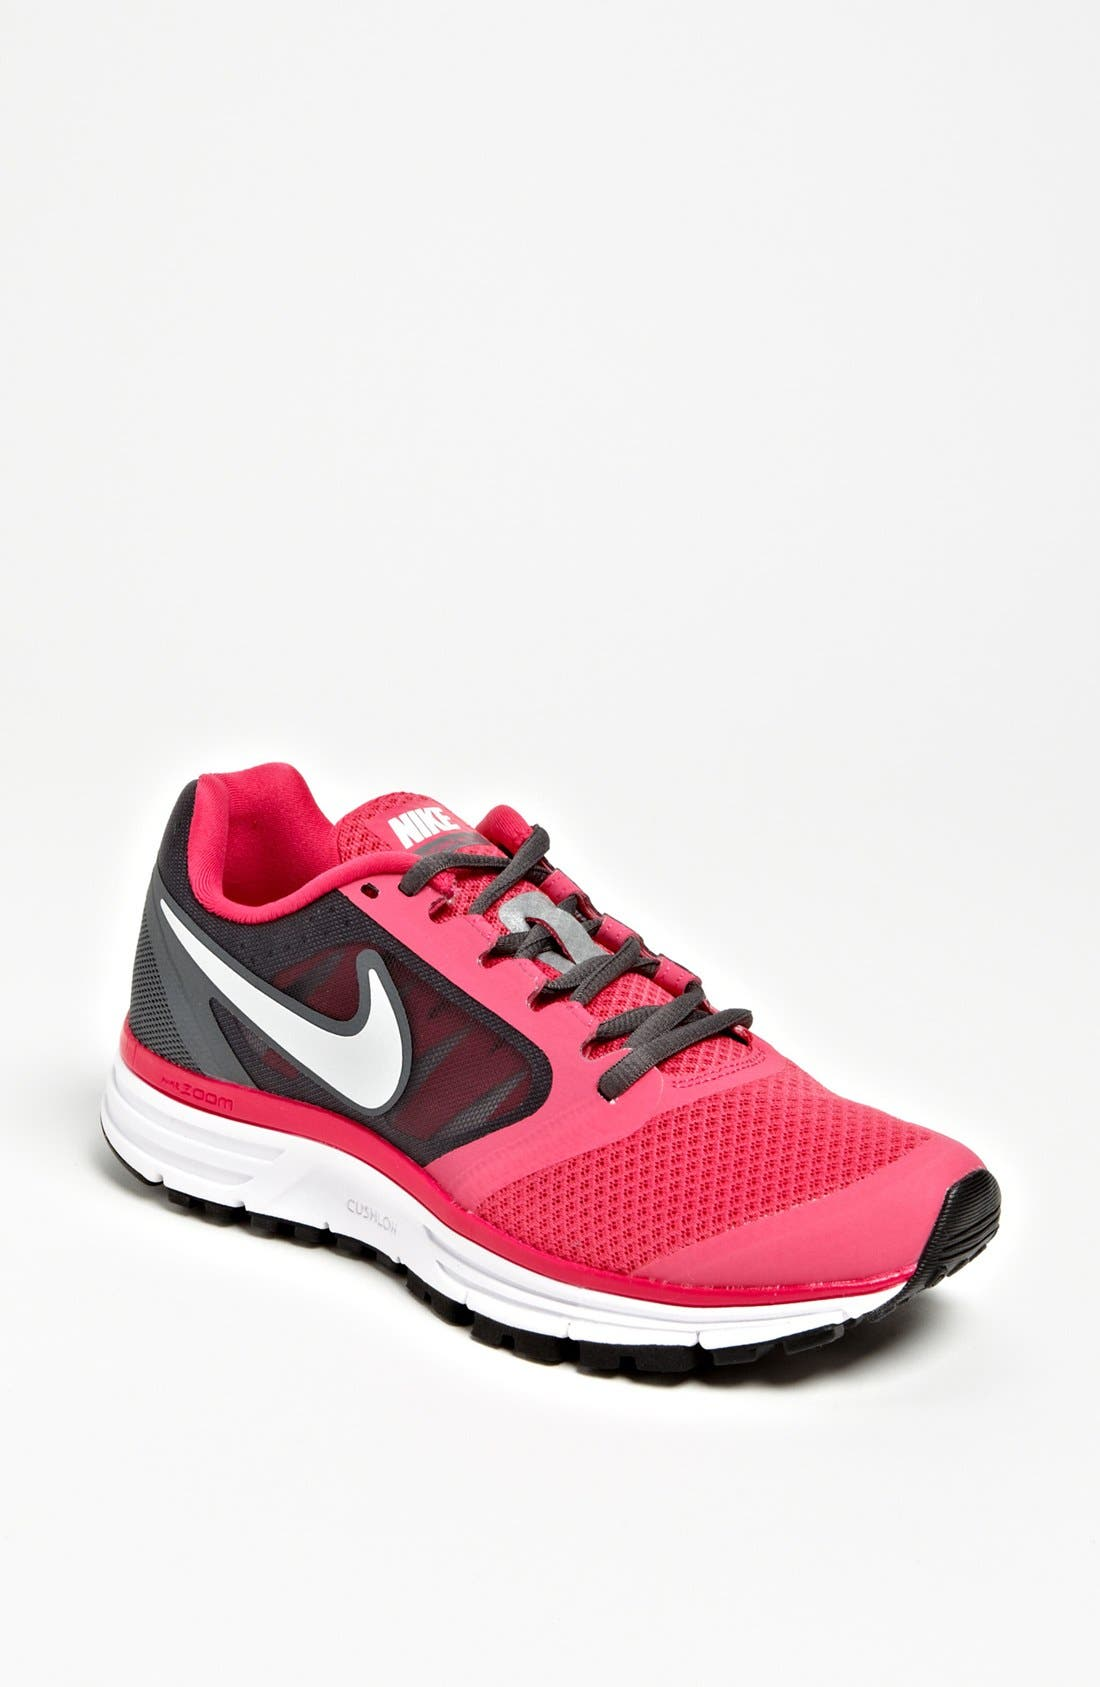 Main Image - Nike 'Zoom Vomero+ 8' Running Shoe (Women)